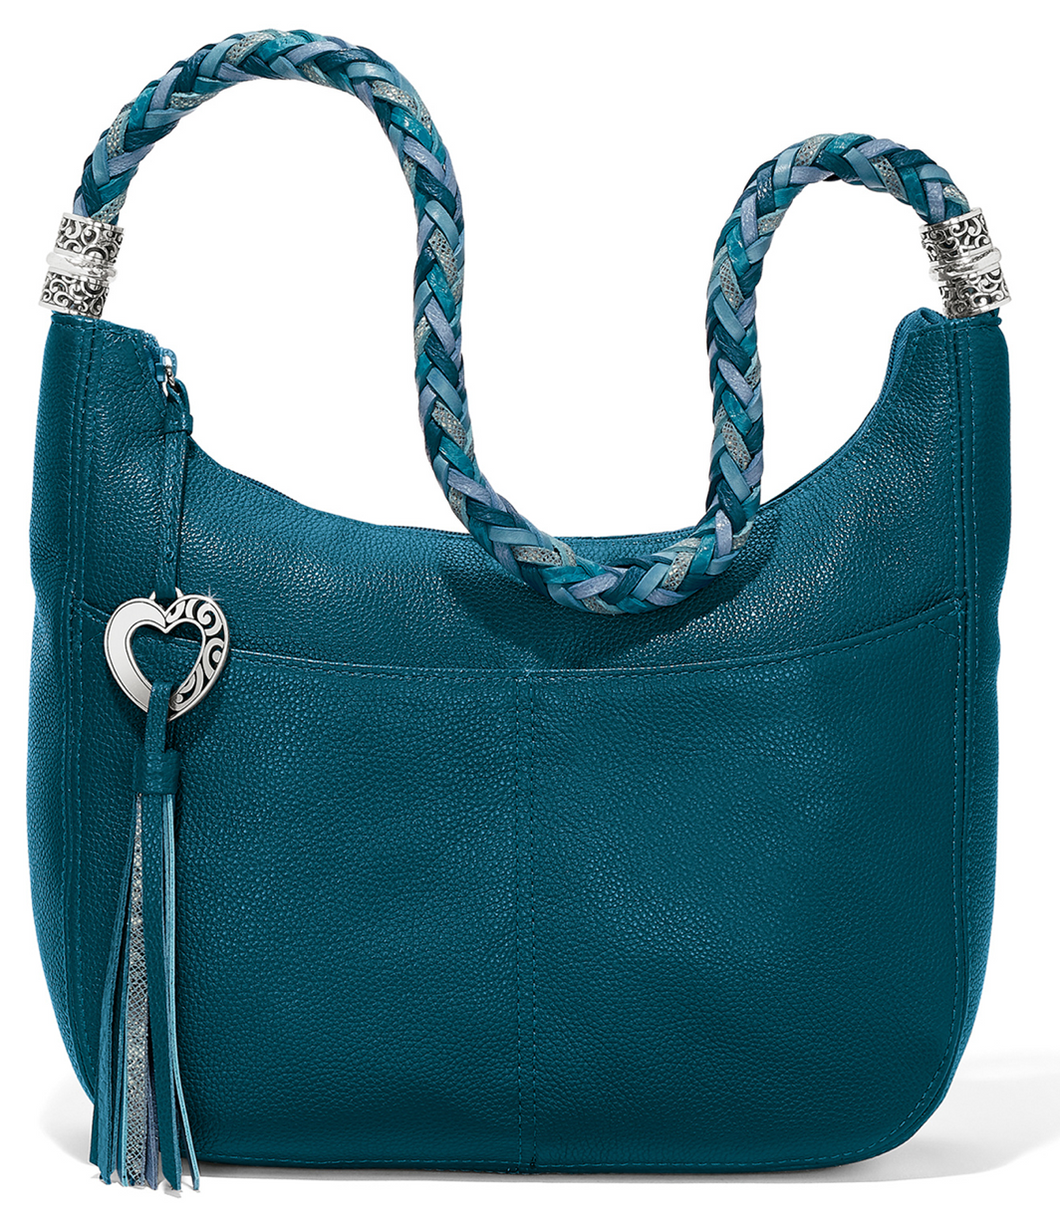 Brighton Barbados Ziptop Hobo Handbag